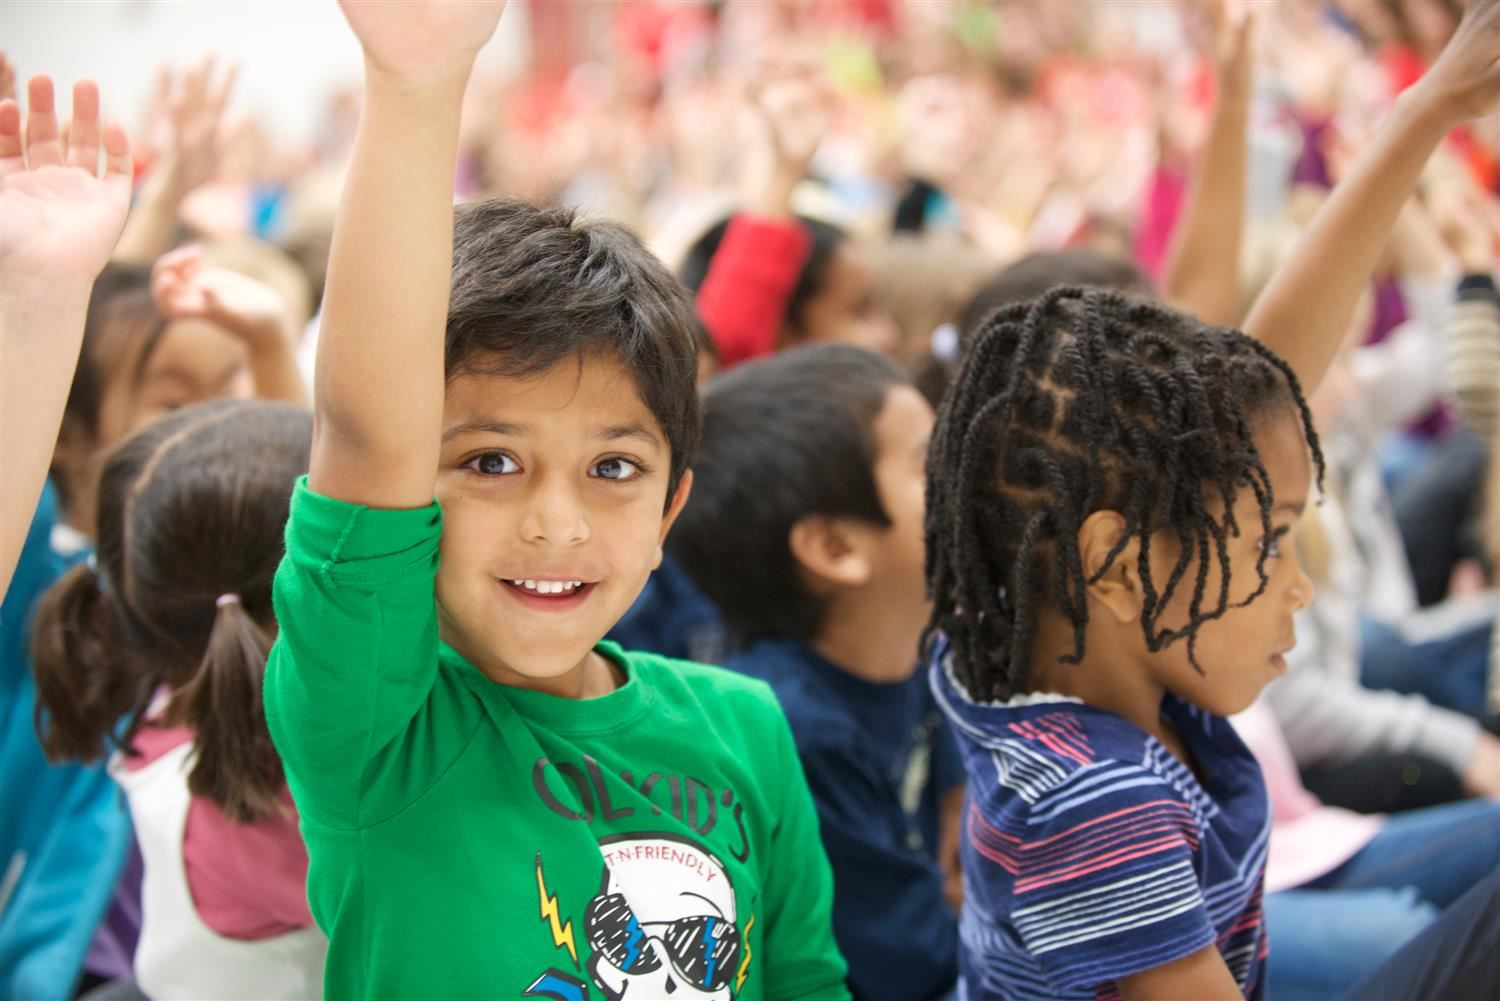 Young boy raising his hand at an assembly